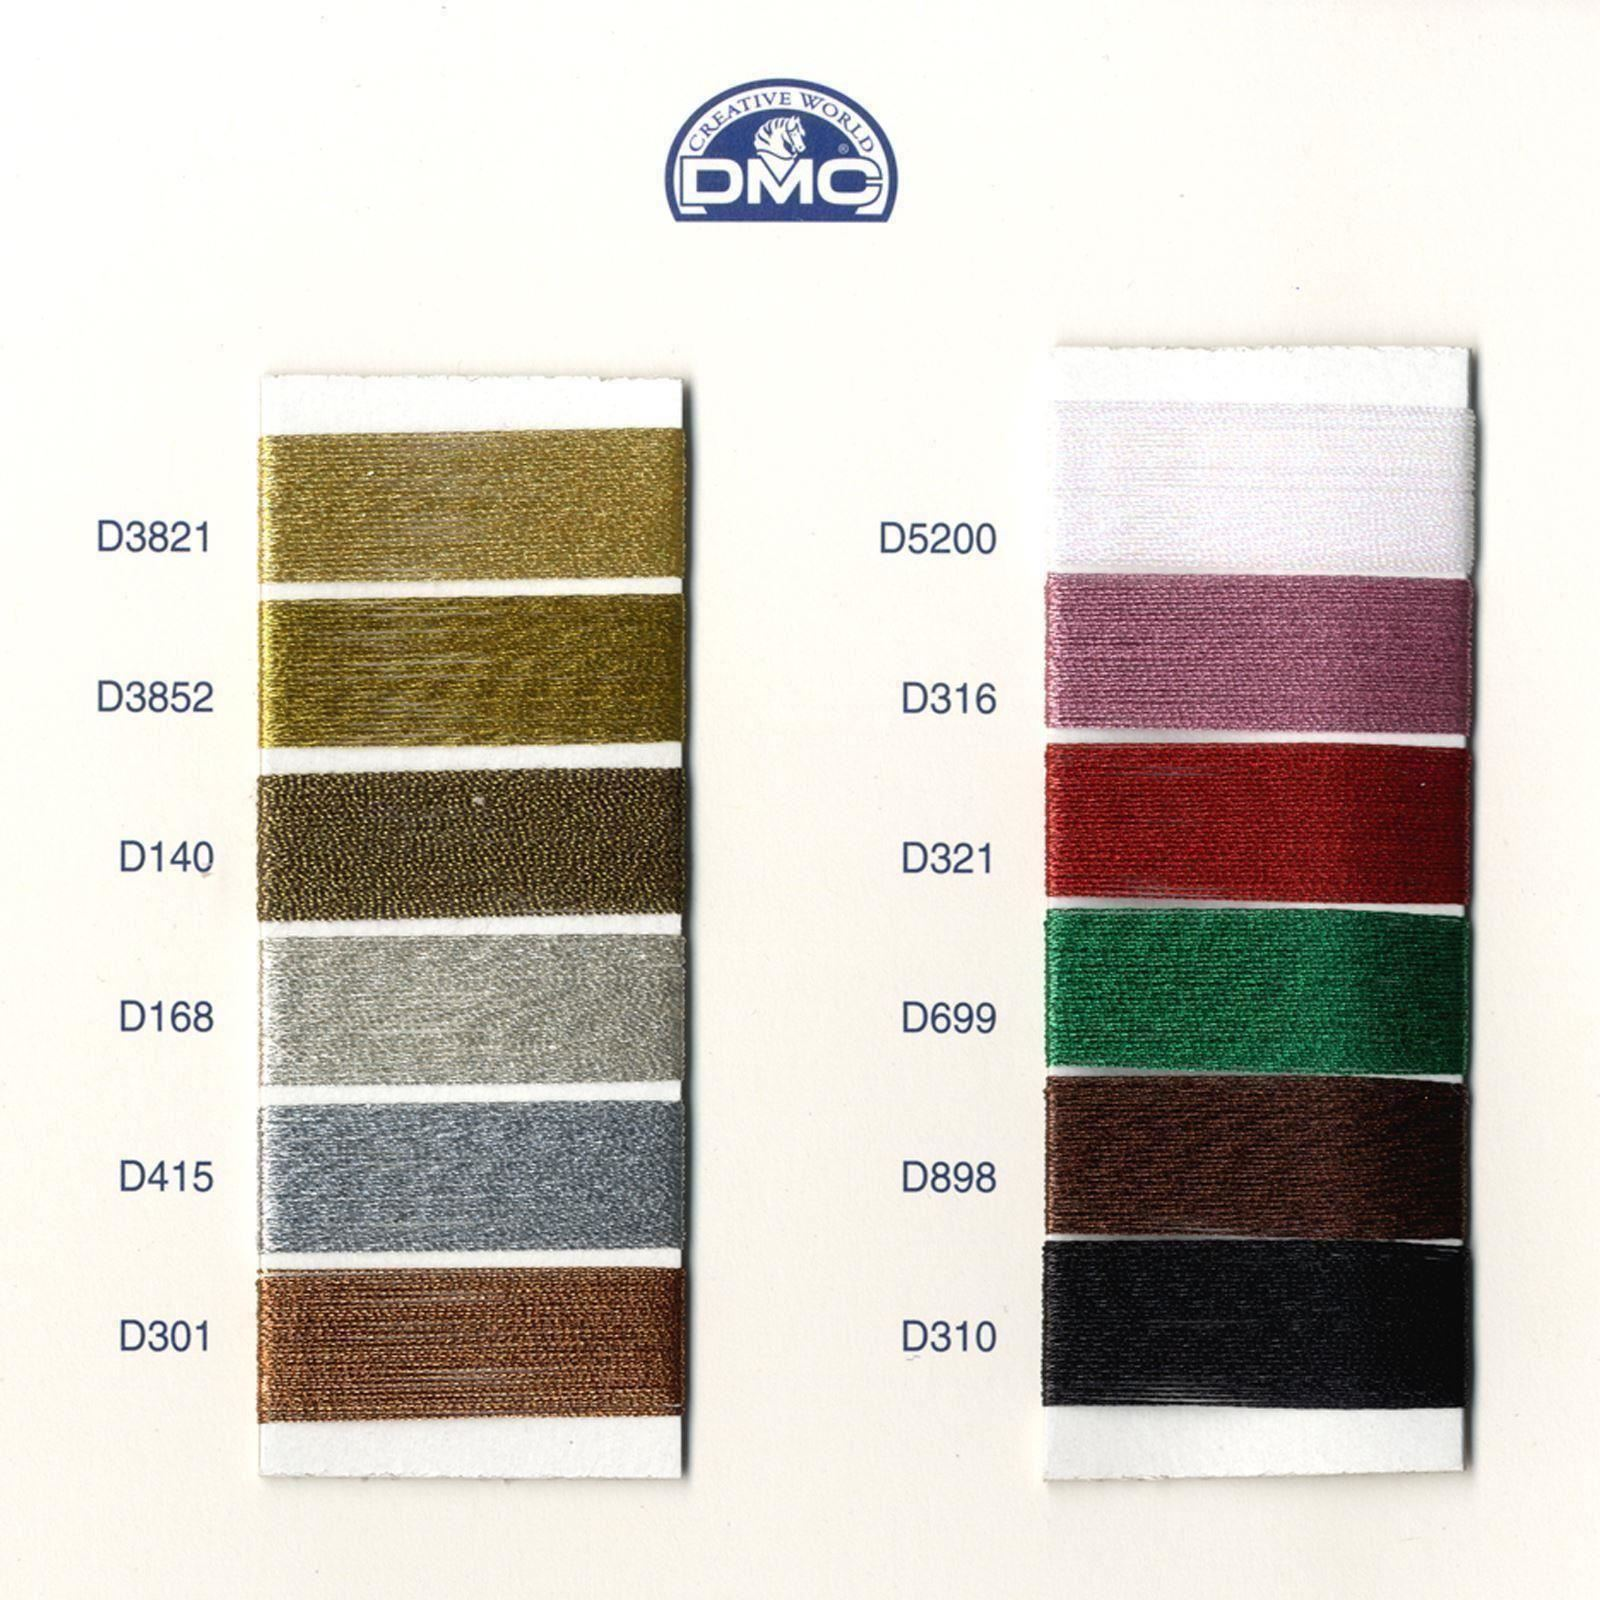 DMC-Diamant-Metallic-Embroidery-Thread-35m-Spool-Cross-Stitch thumbnail 43